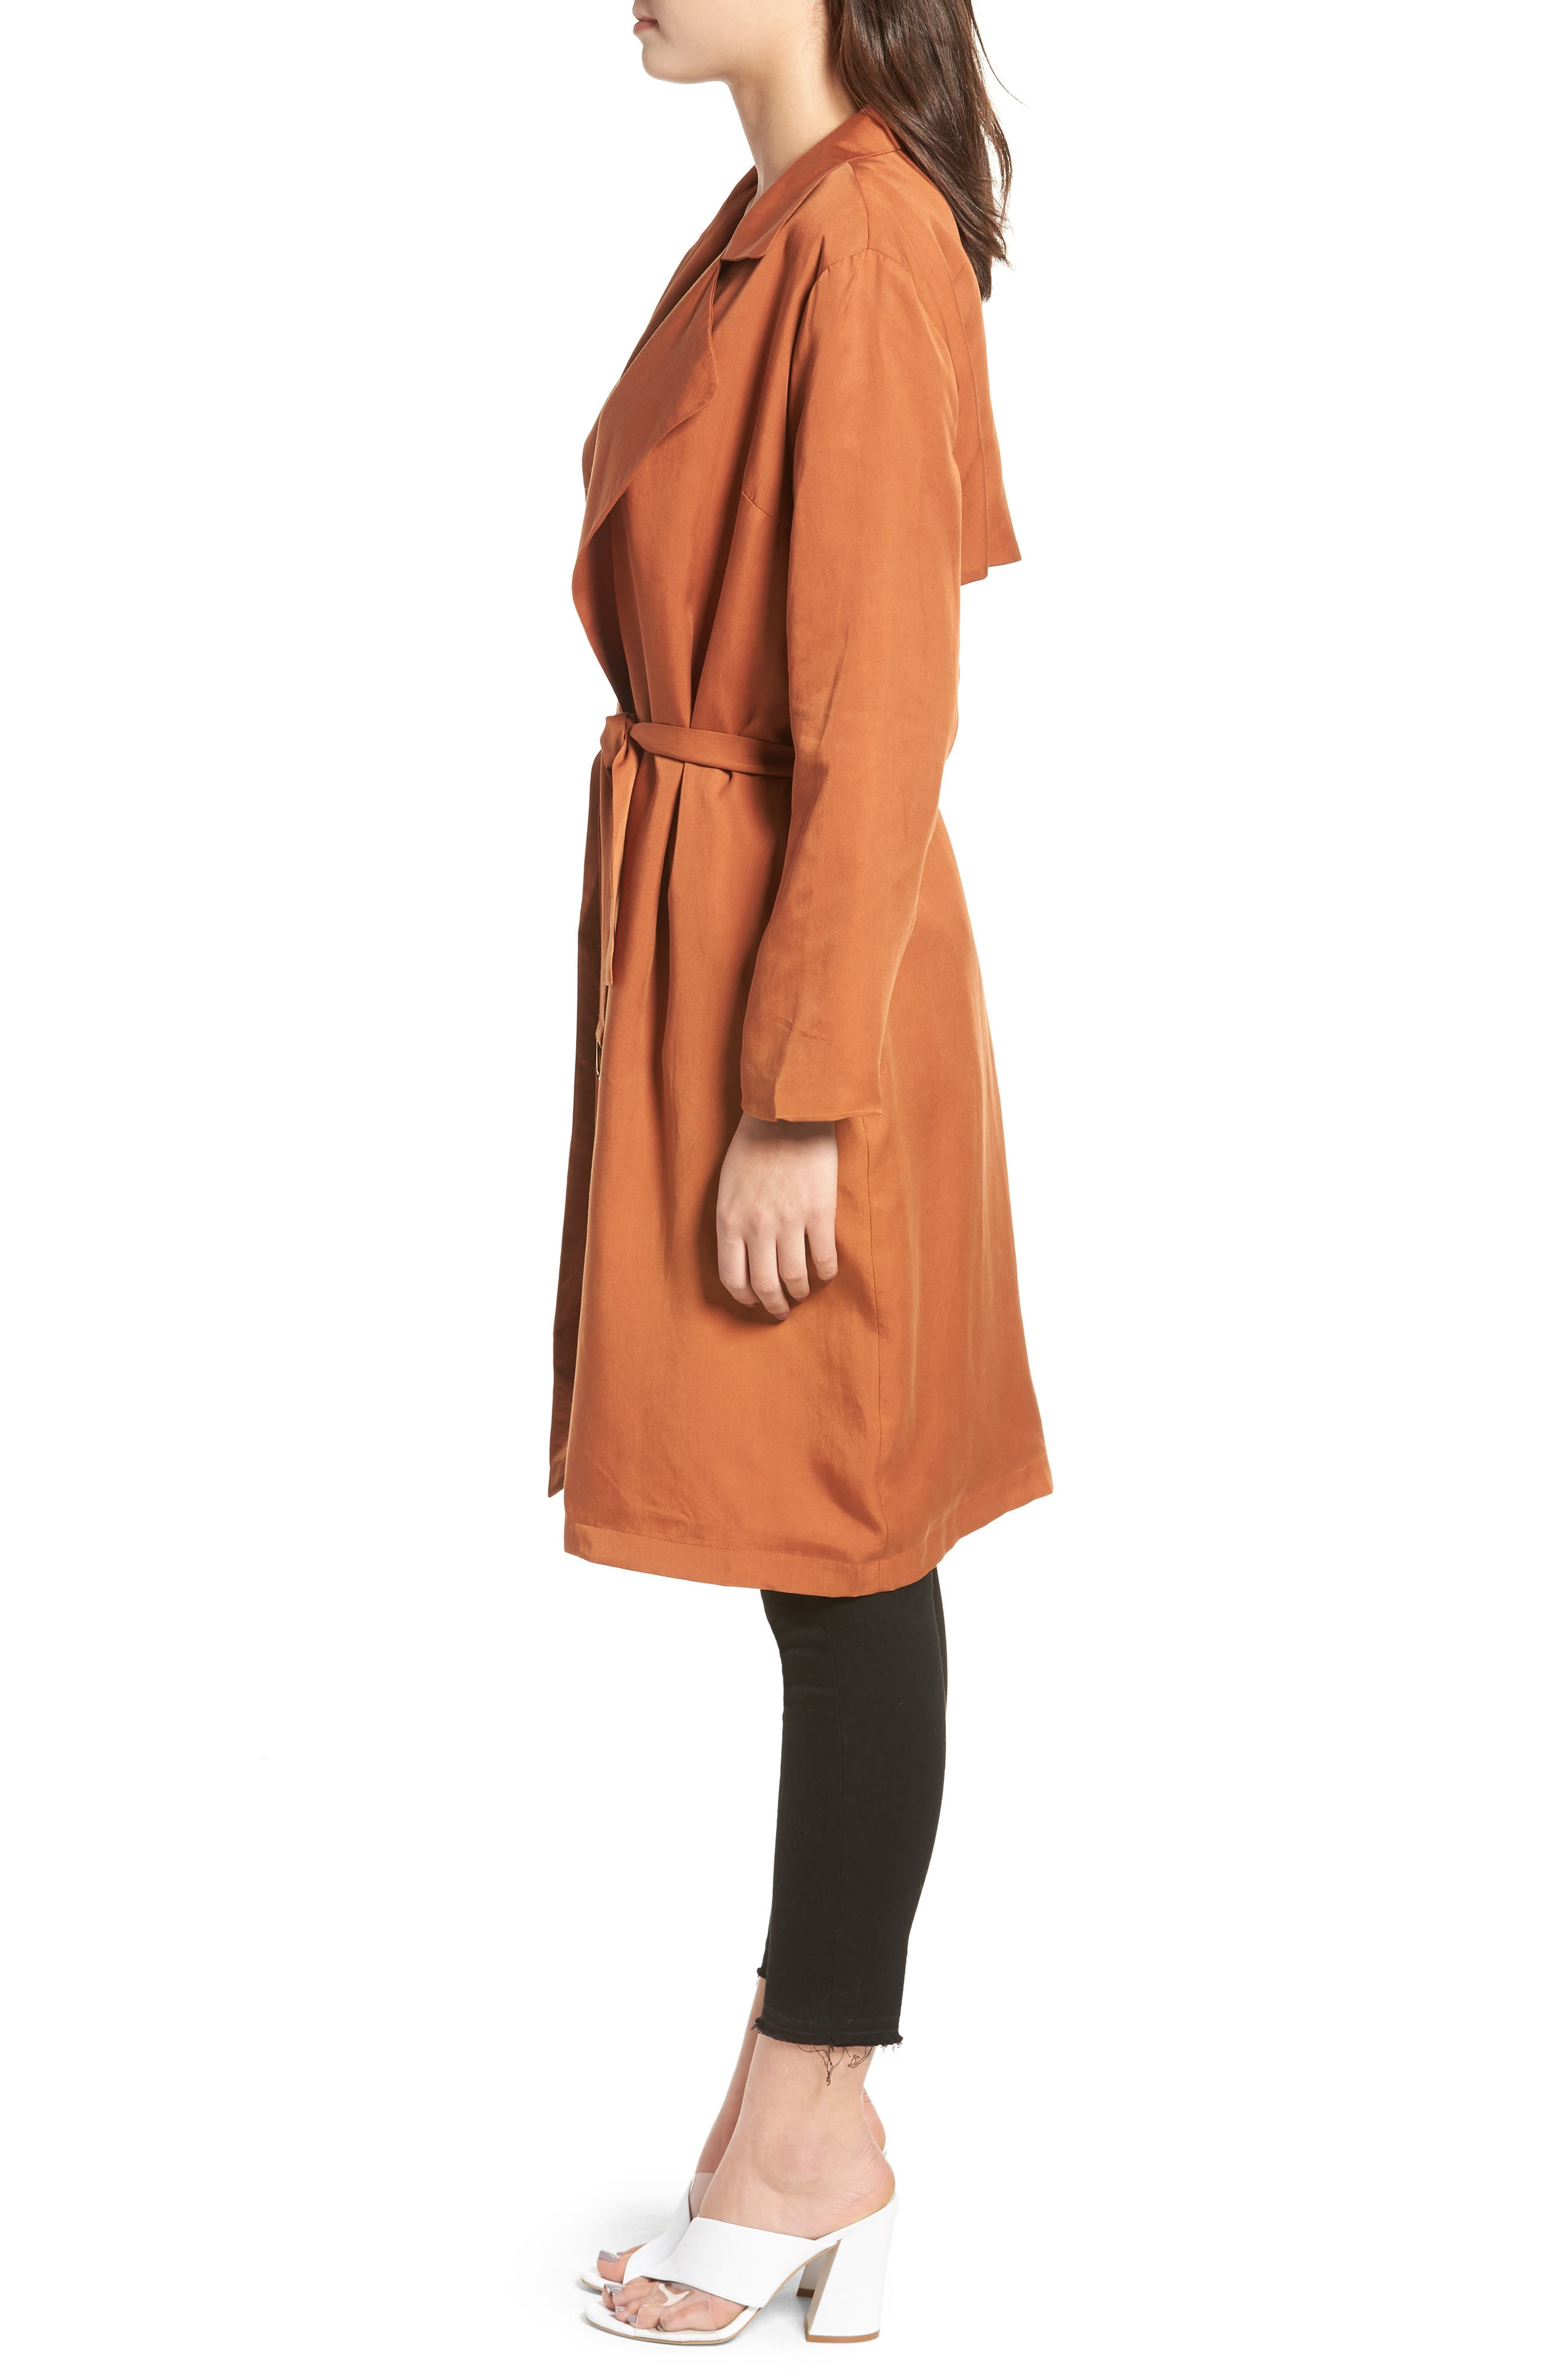 LIRA CLOTHING,                             Carmen Belted Trench Coat,                             Alternate thumbnail 3, color,                             BROWN